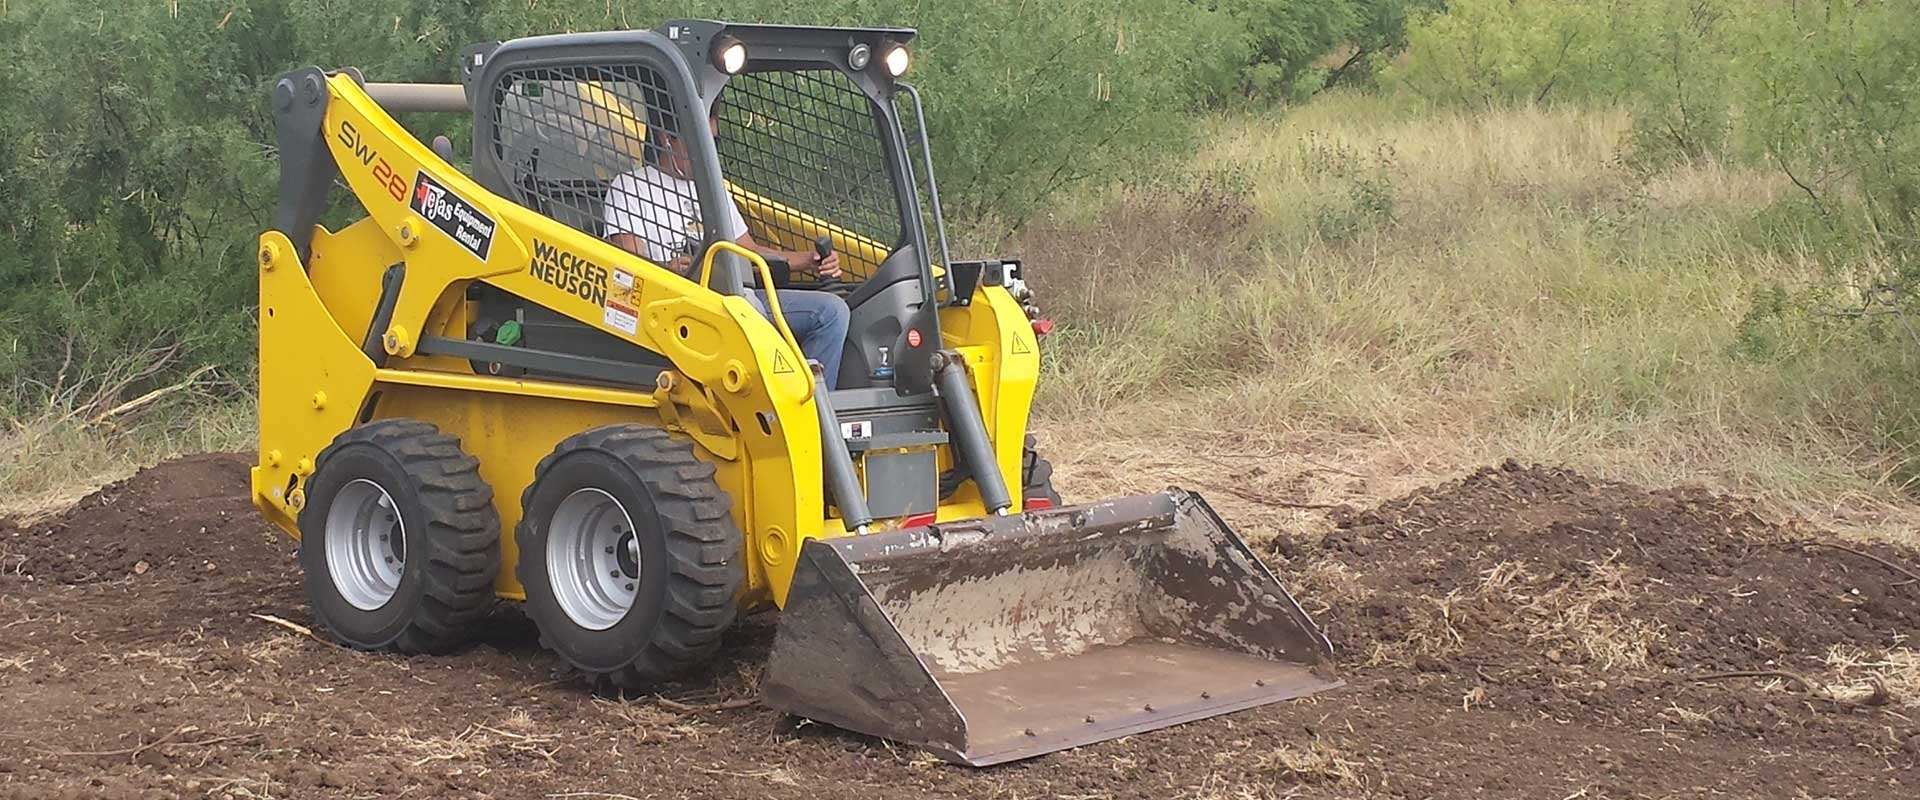 Skid Steer Rentals in the Rio Grande Valley